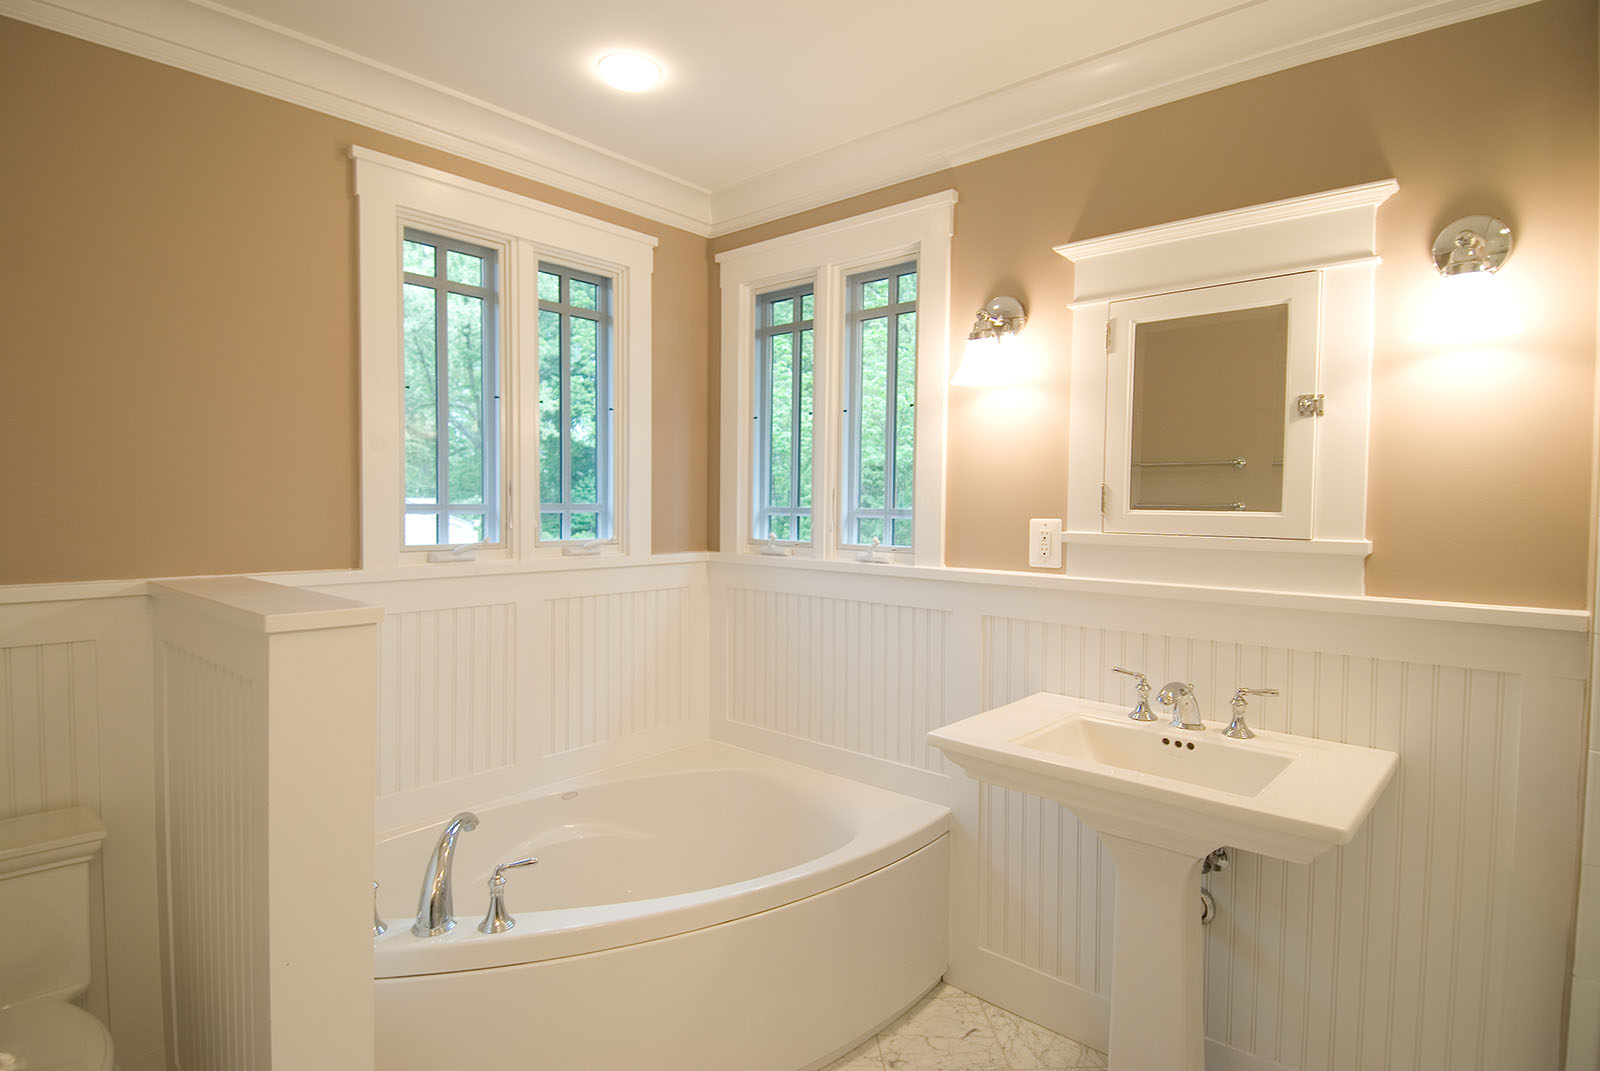 Old Bathroom Remodel Classy Bathroom Remodeling  Old Dominion Building Group Inspiration